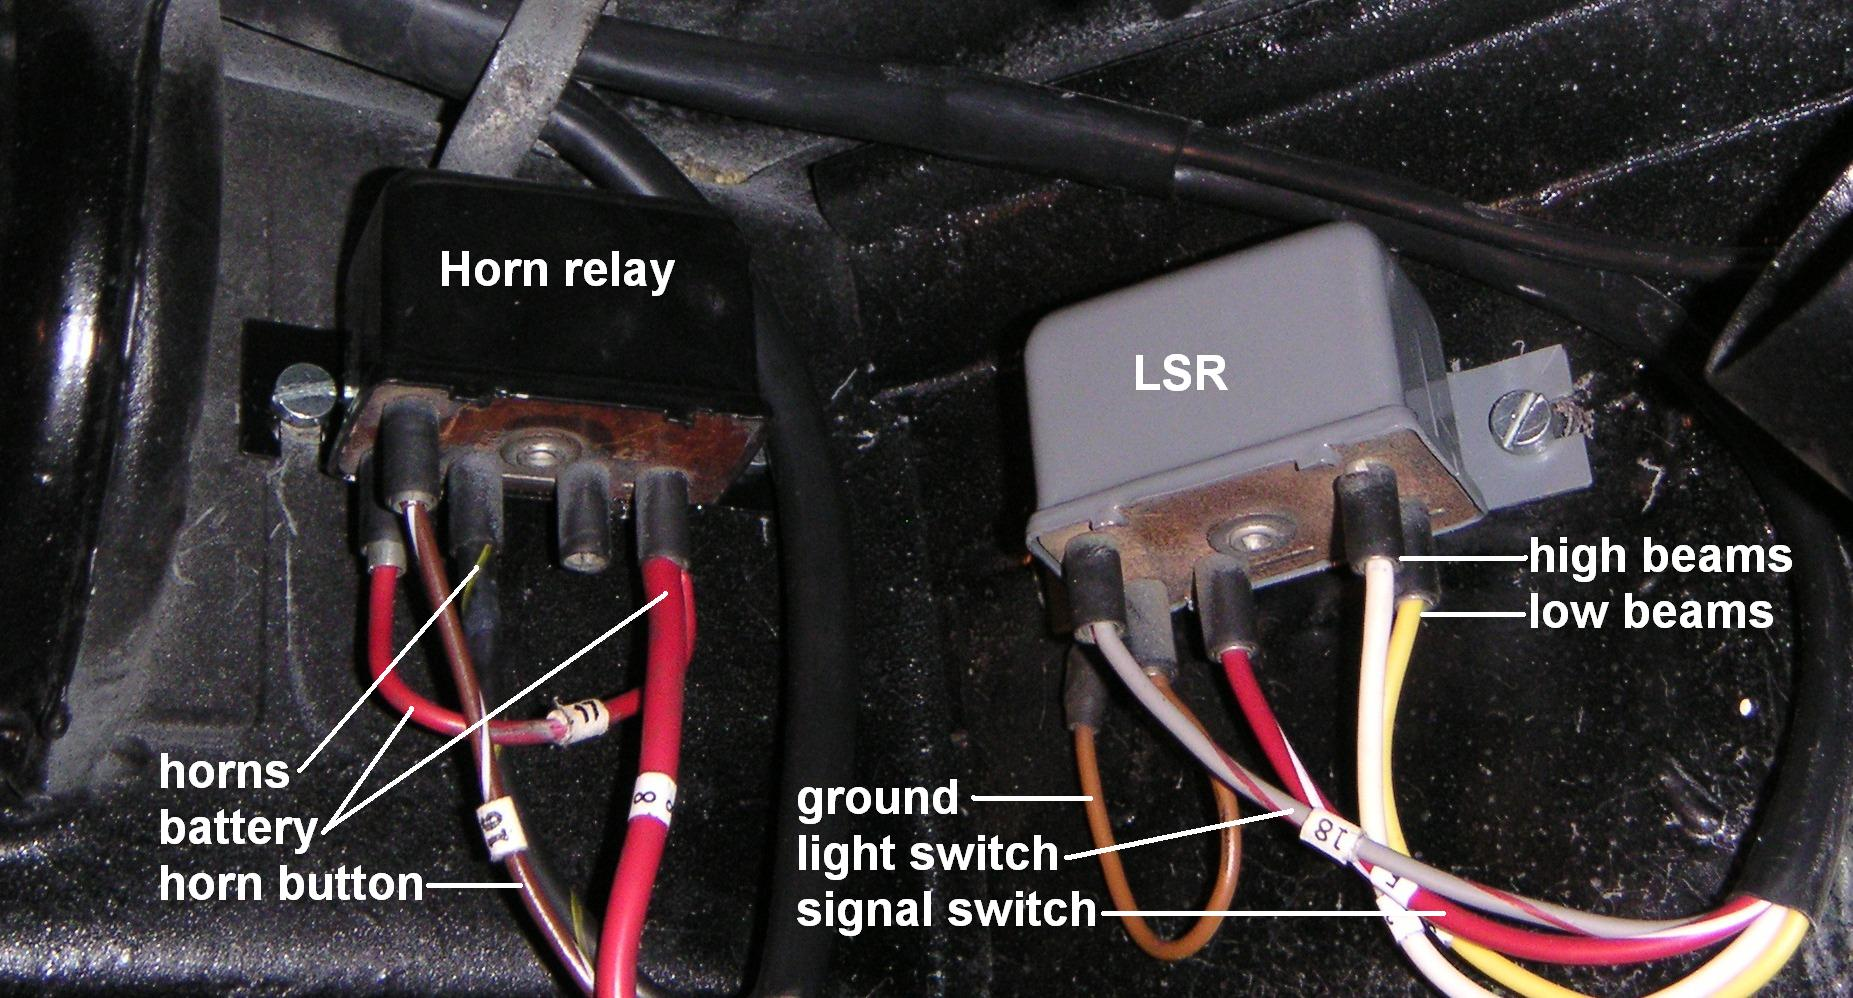 Technical Midwest 356 Club Kit Car Fuse Relay Box Which Is On The Right Hand End Of Bulkhead Behind Dashboard In T6 Cars Relays Are Located Trunk Directly Above Block